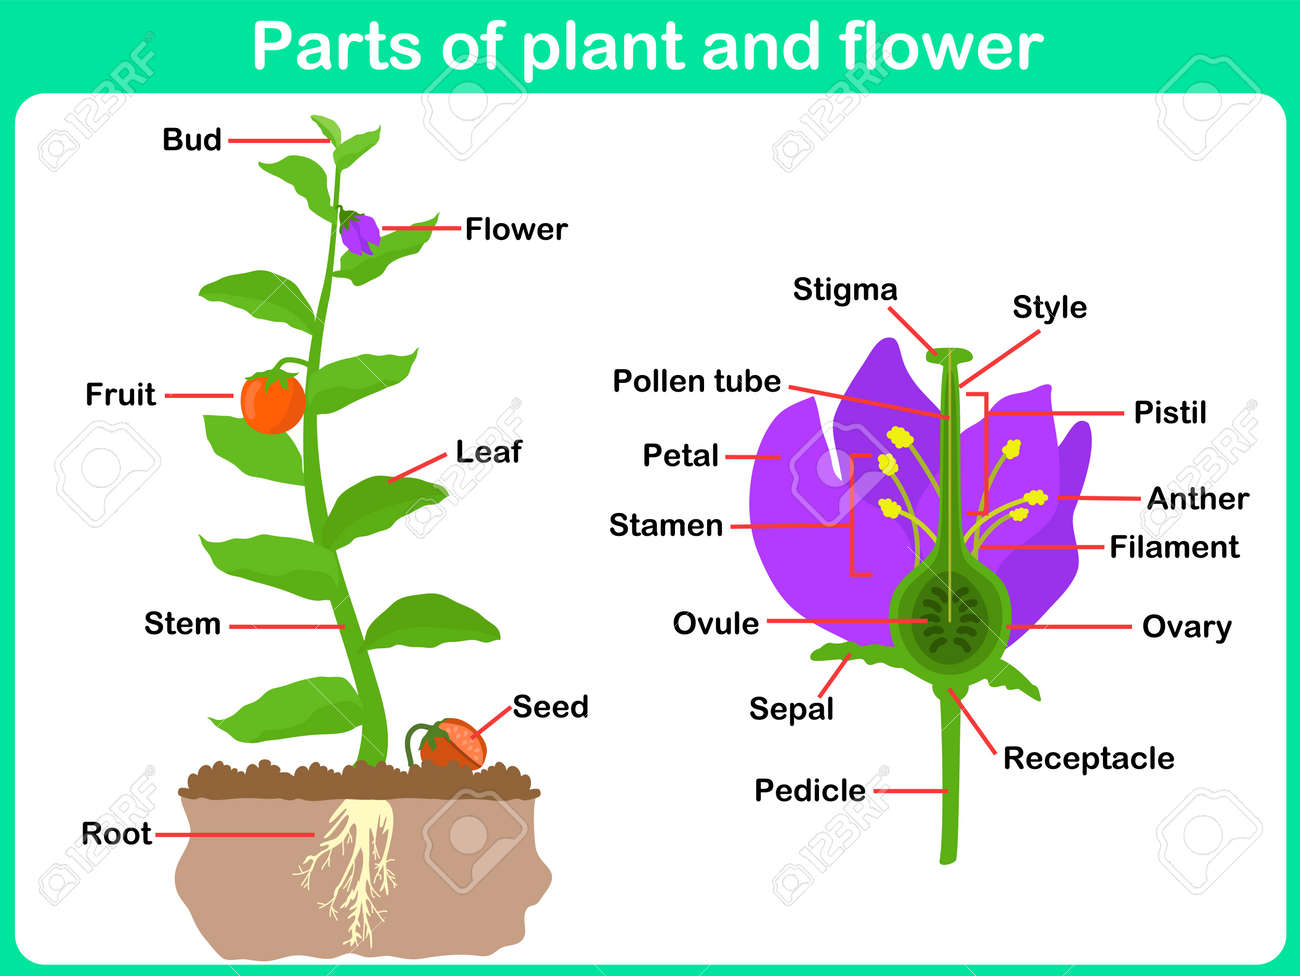 worksheet Parts Of A Flower Worksheet For Preschool leaning parts of plant and flower for kids worksheet royalty free stock vector 35185398